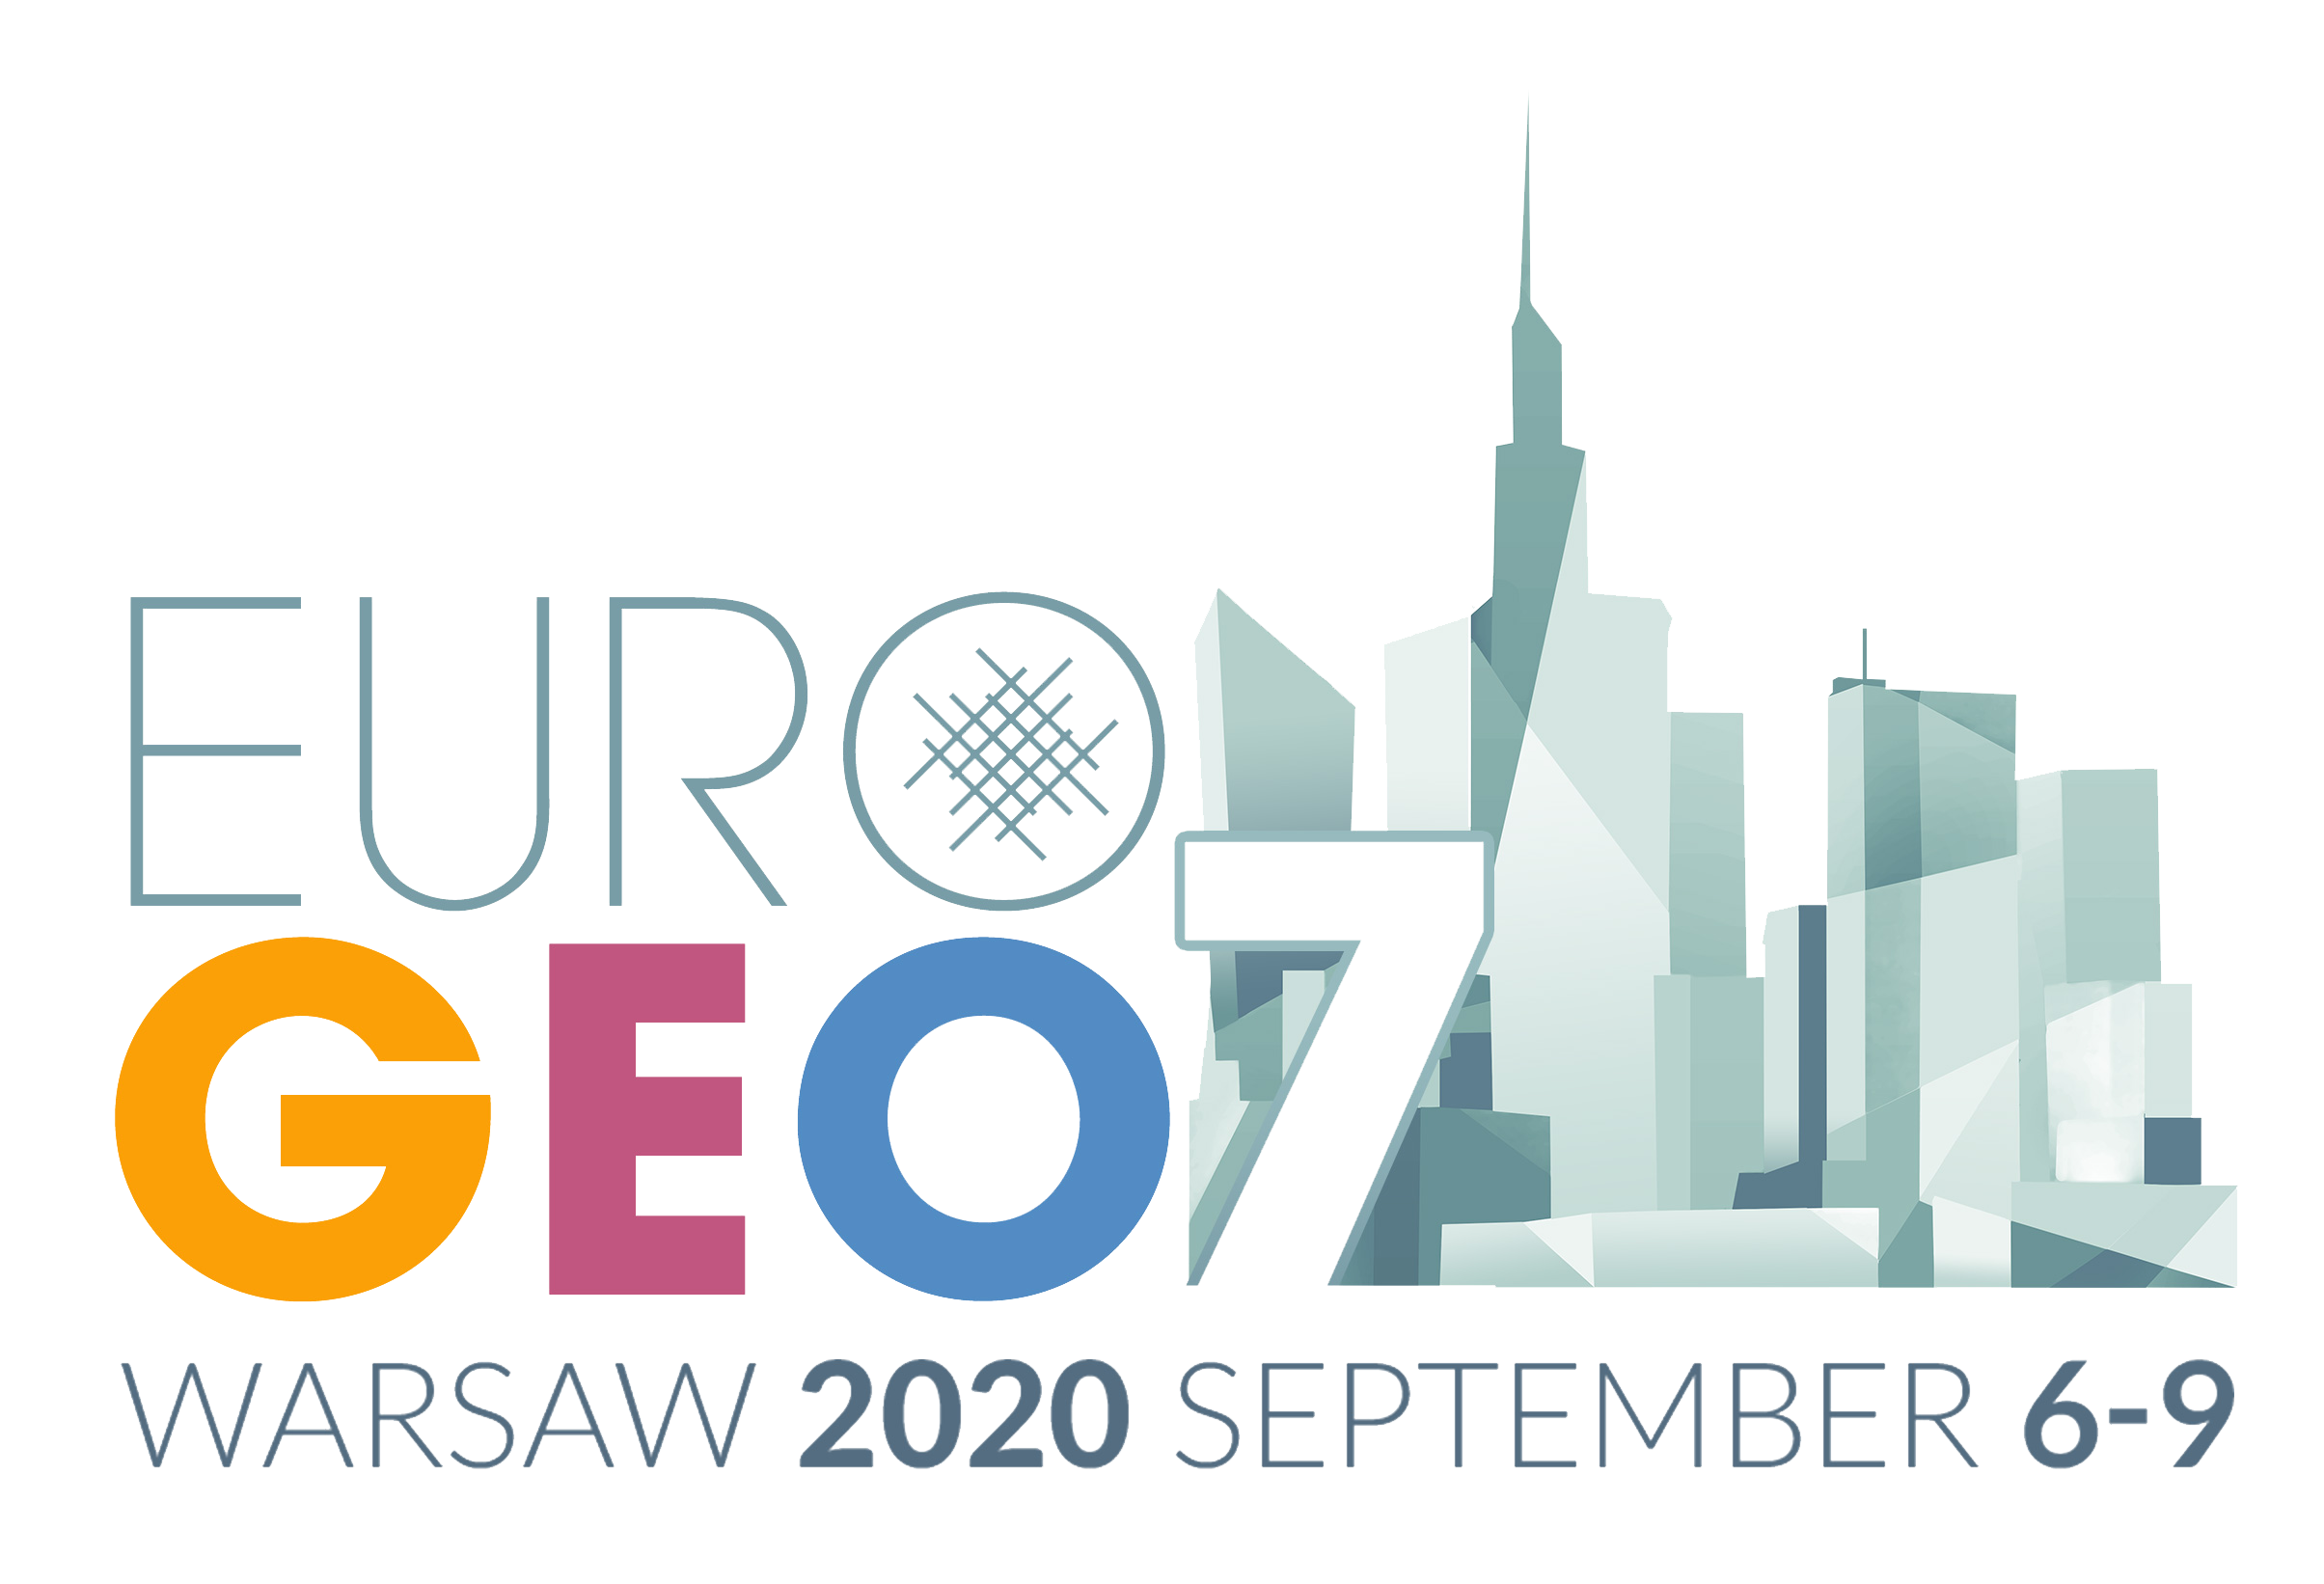 7th European Geosynthetics Conference logo